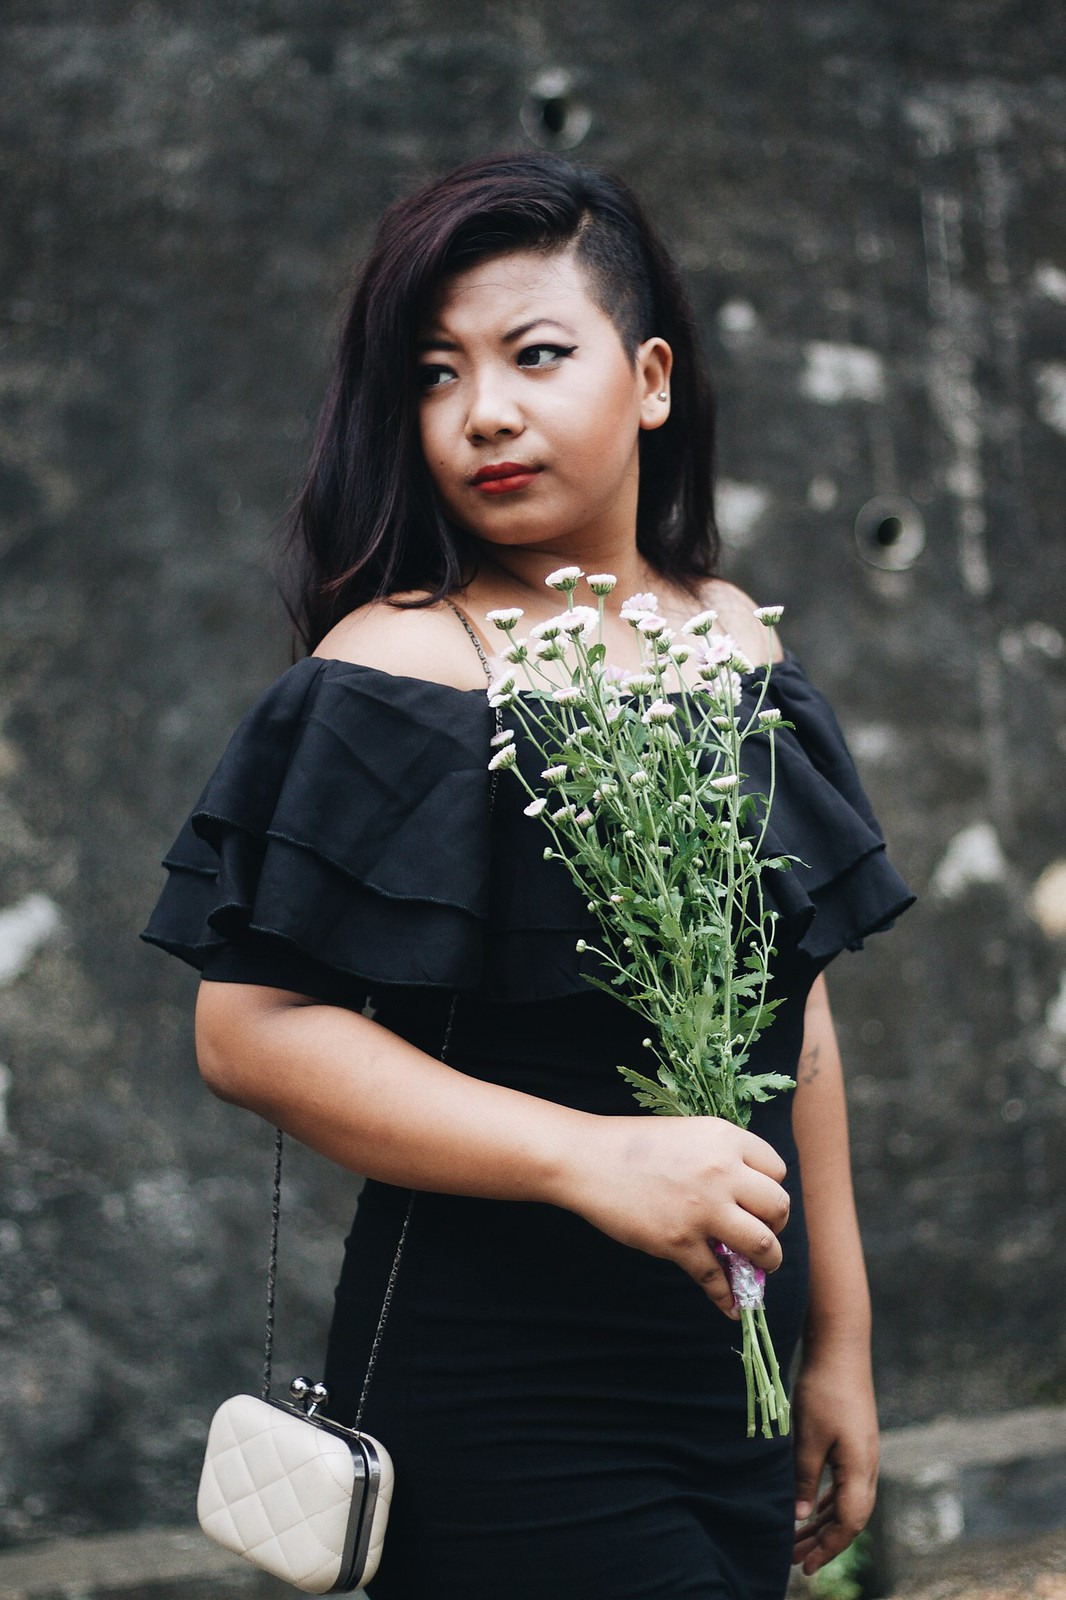 SelestyMe Indian fashion blog by Chayanika Rabha Wearing Stalkbylove Off the Shoulder Little black dress Jabong Black pointed boots and clutch